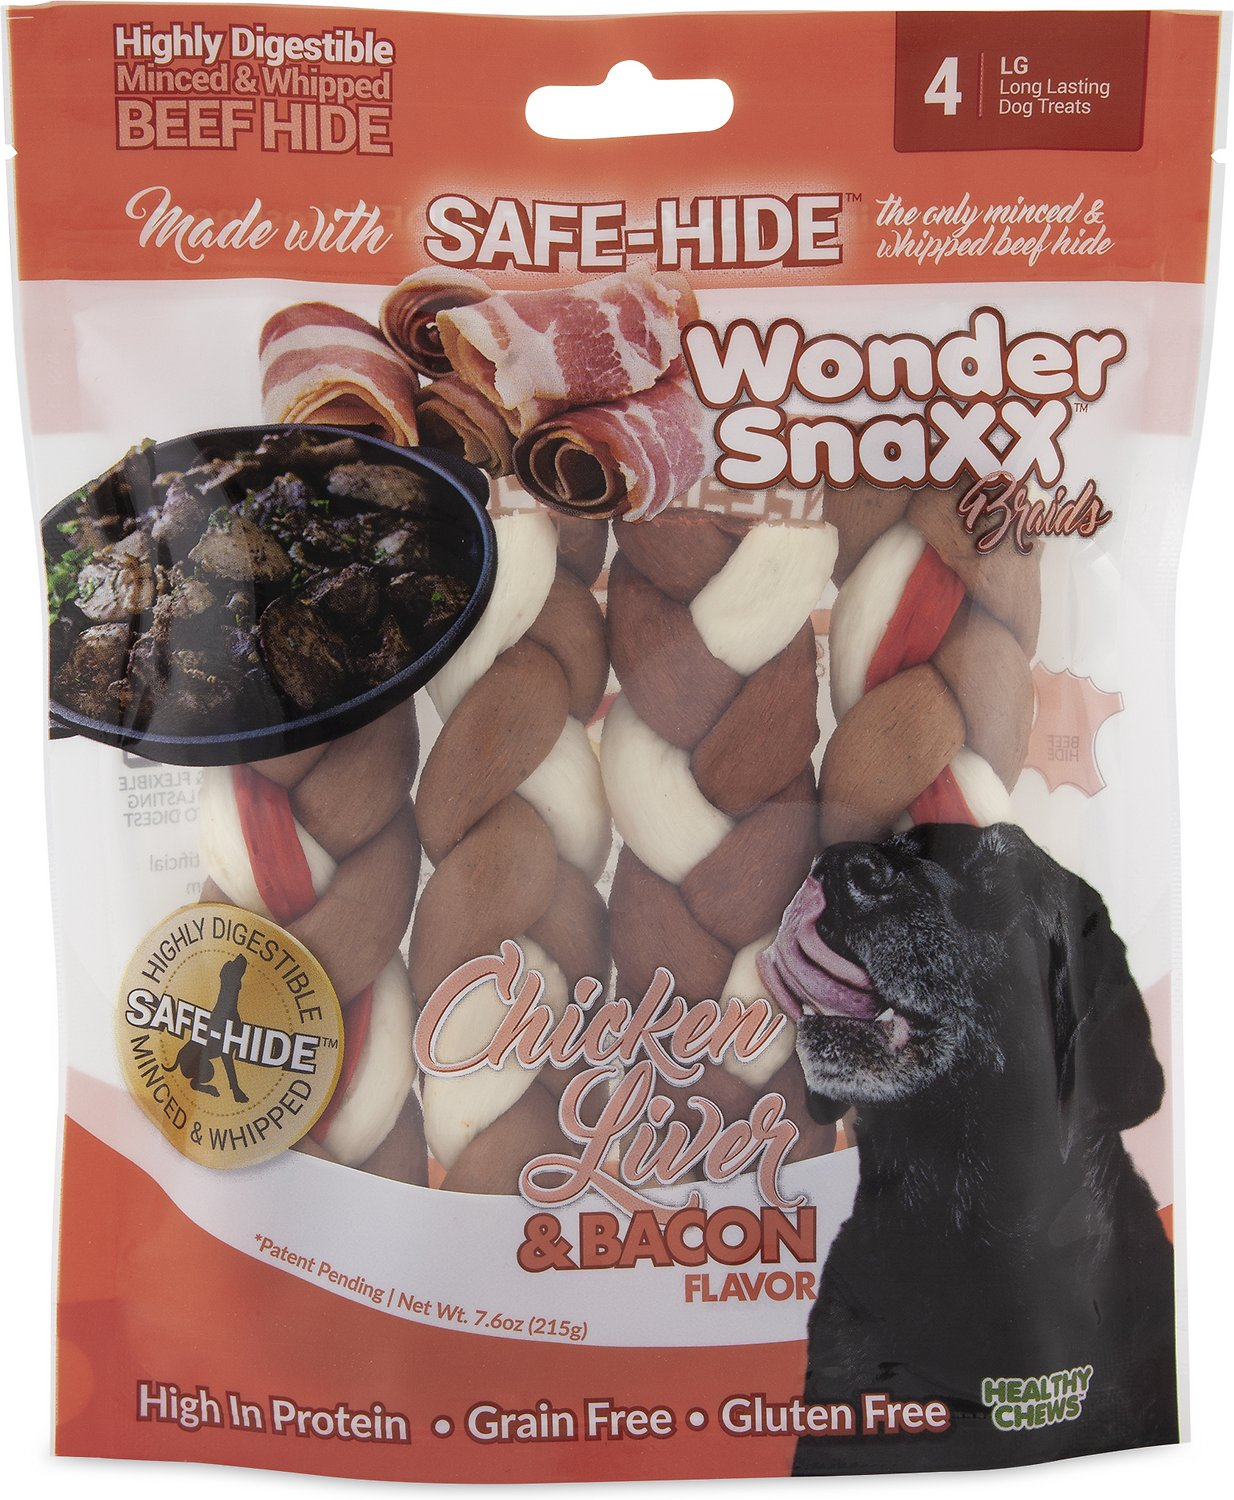 HEALTHY CHEWS Wonder Snaxx Braids Chicken Liver & Bacon Flavor Dog Treats, 4-count